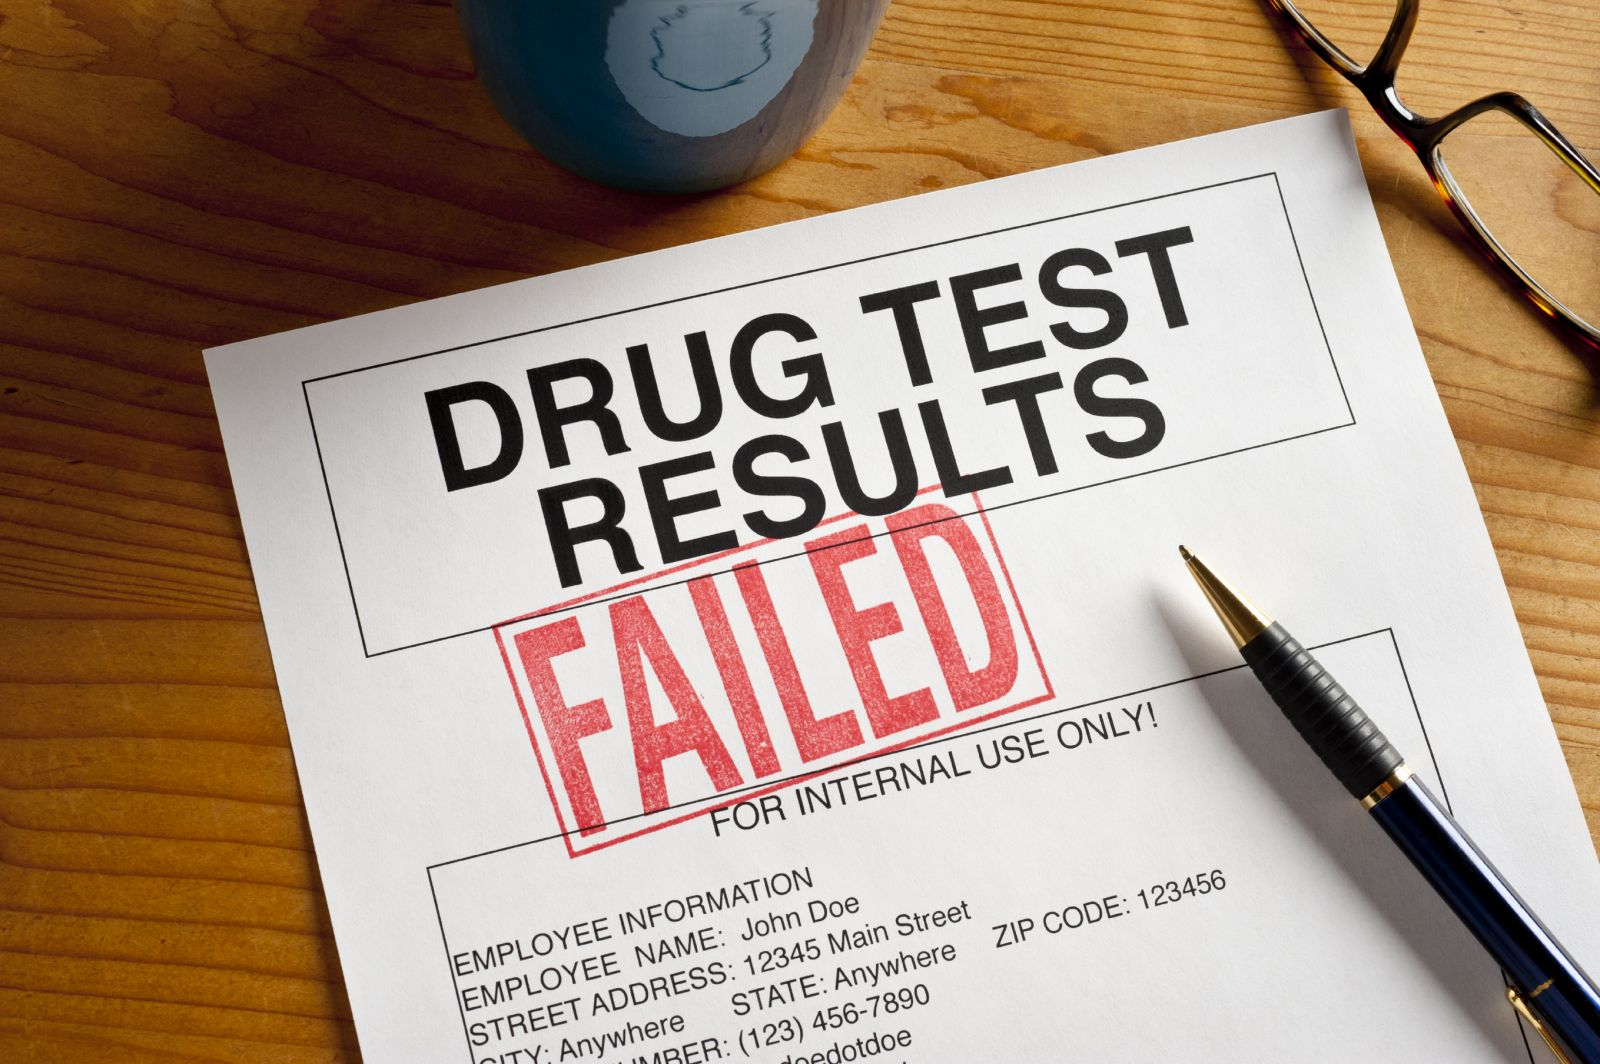 an introduction to drug testing of highschool students This essay discusses random drug testing in schools a brief introduction is followed by an expanded discussion on the positions of key stakeholders whose interests include economics, sports.